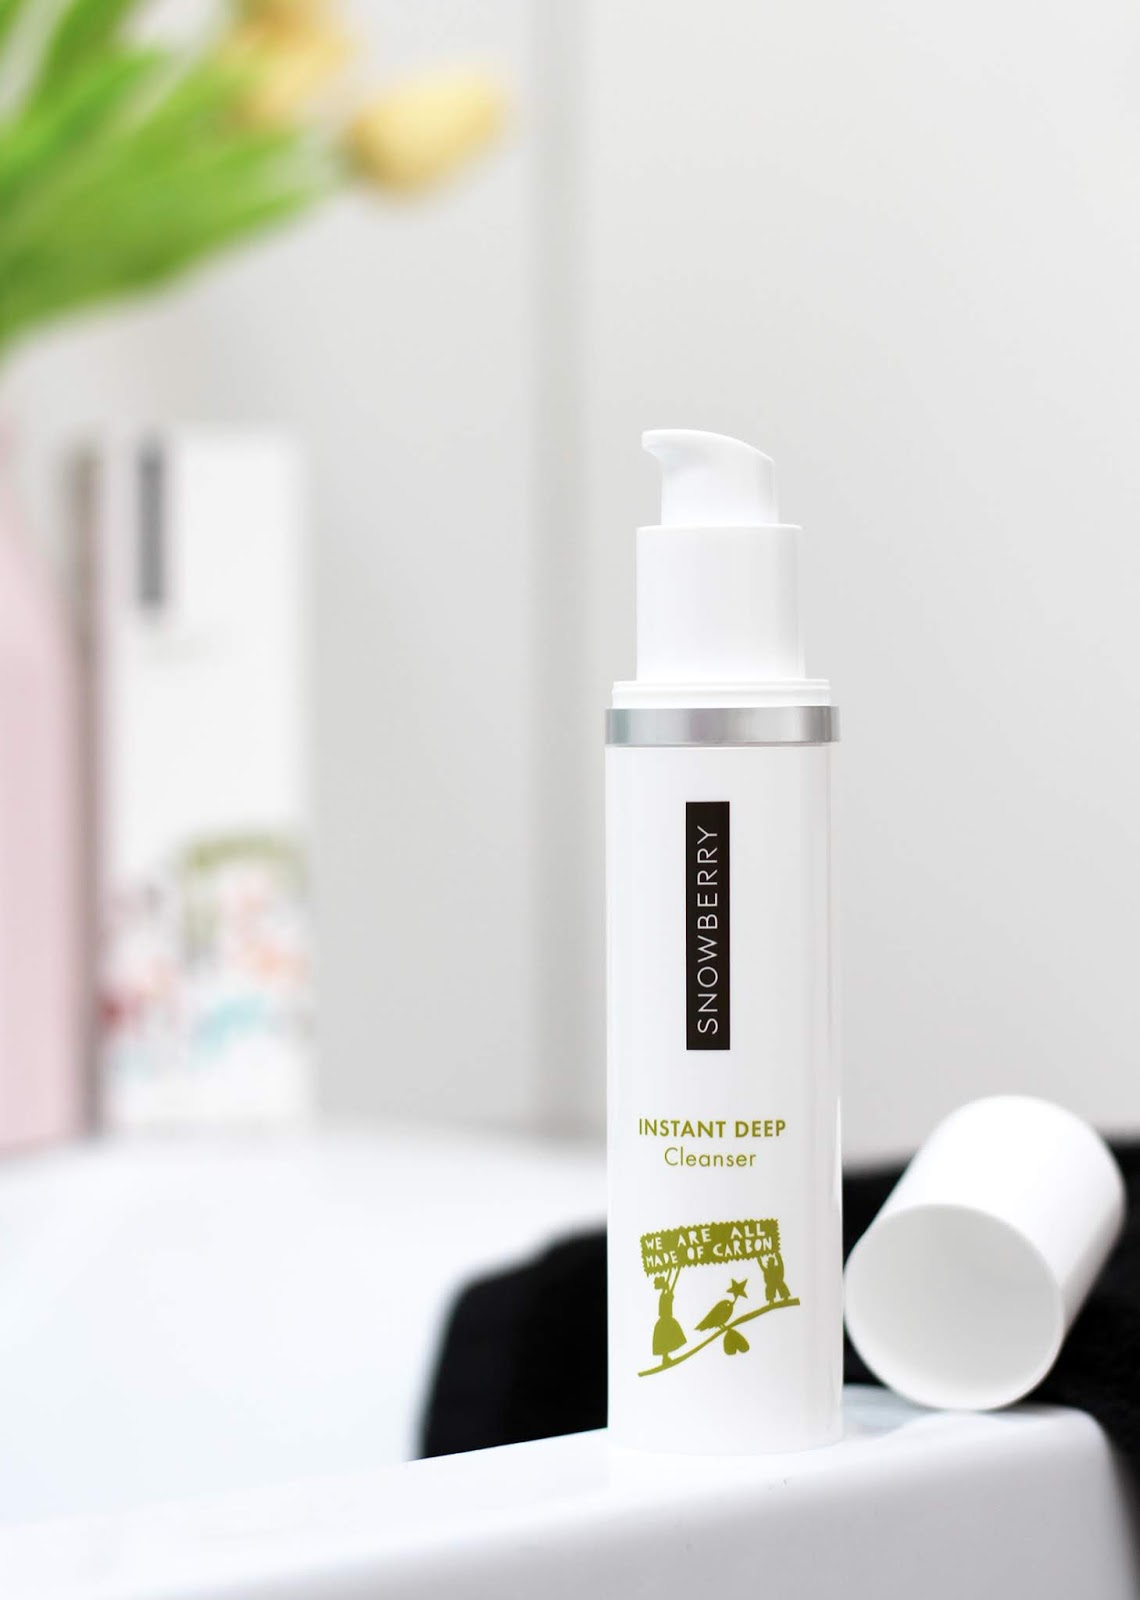 SNOWBERRY | Instant Deep Cleanser - Review - CassandraMyee #ad #sponsored